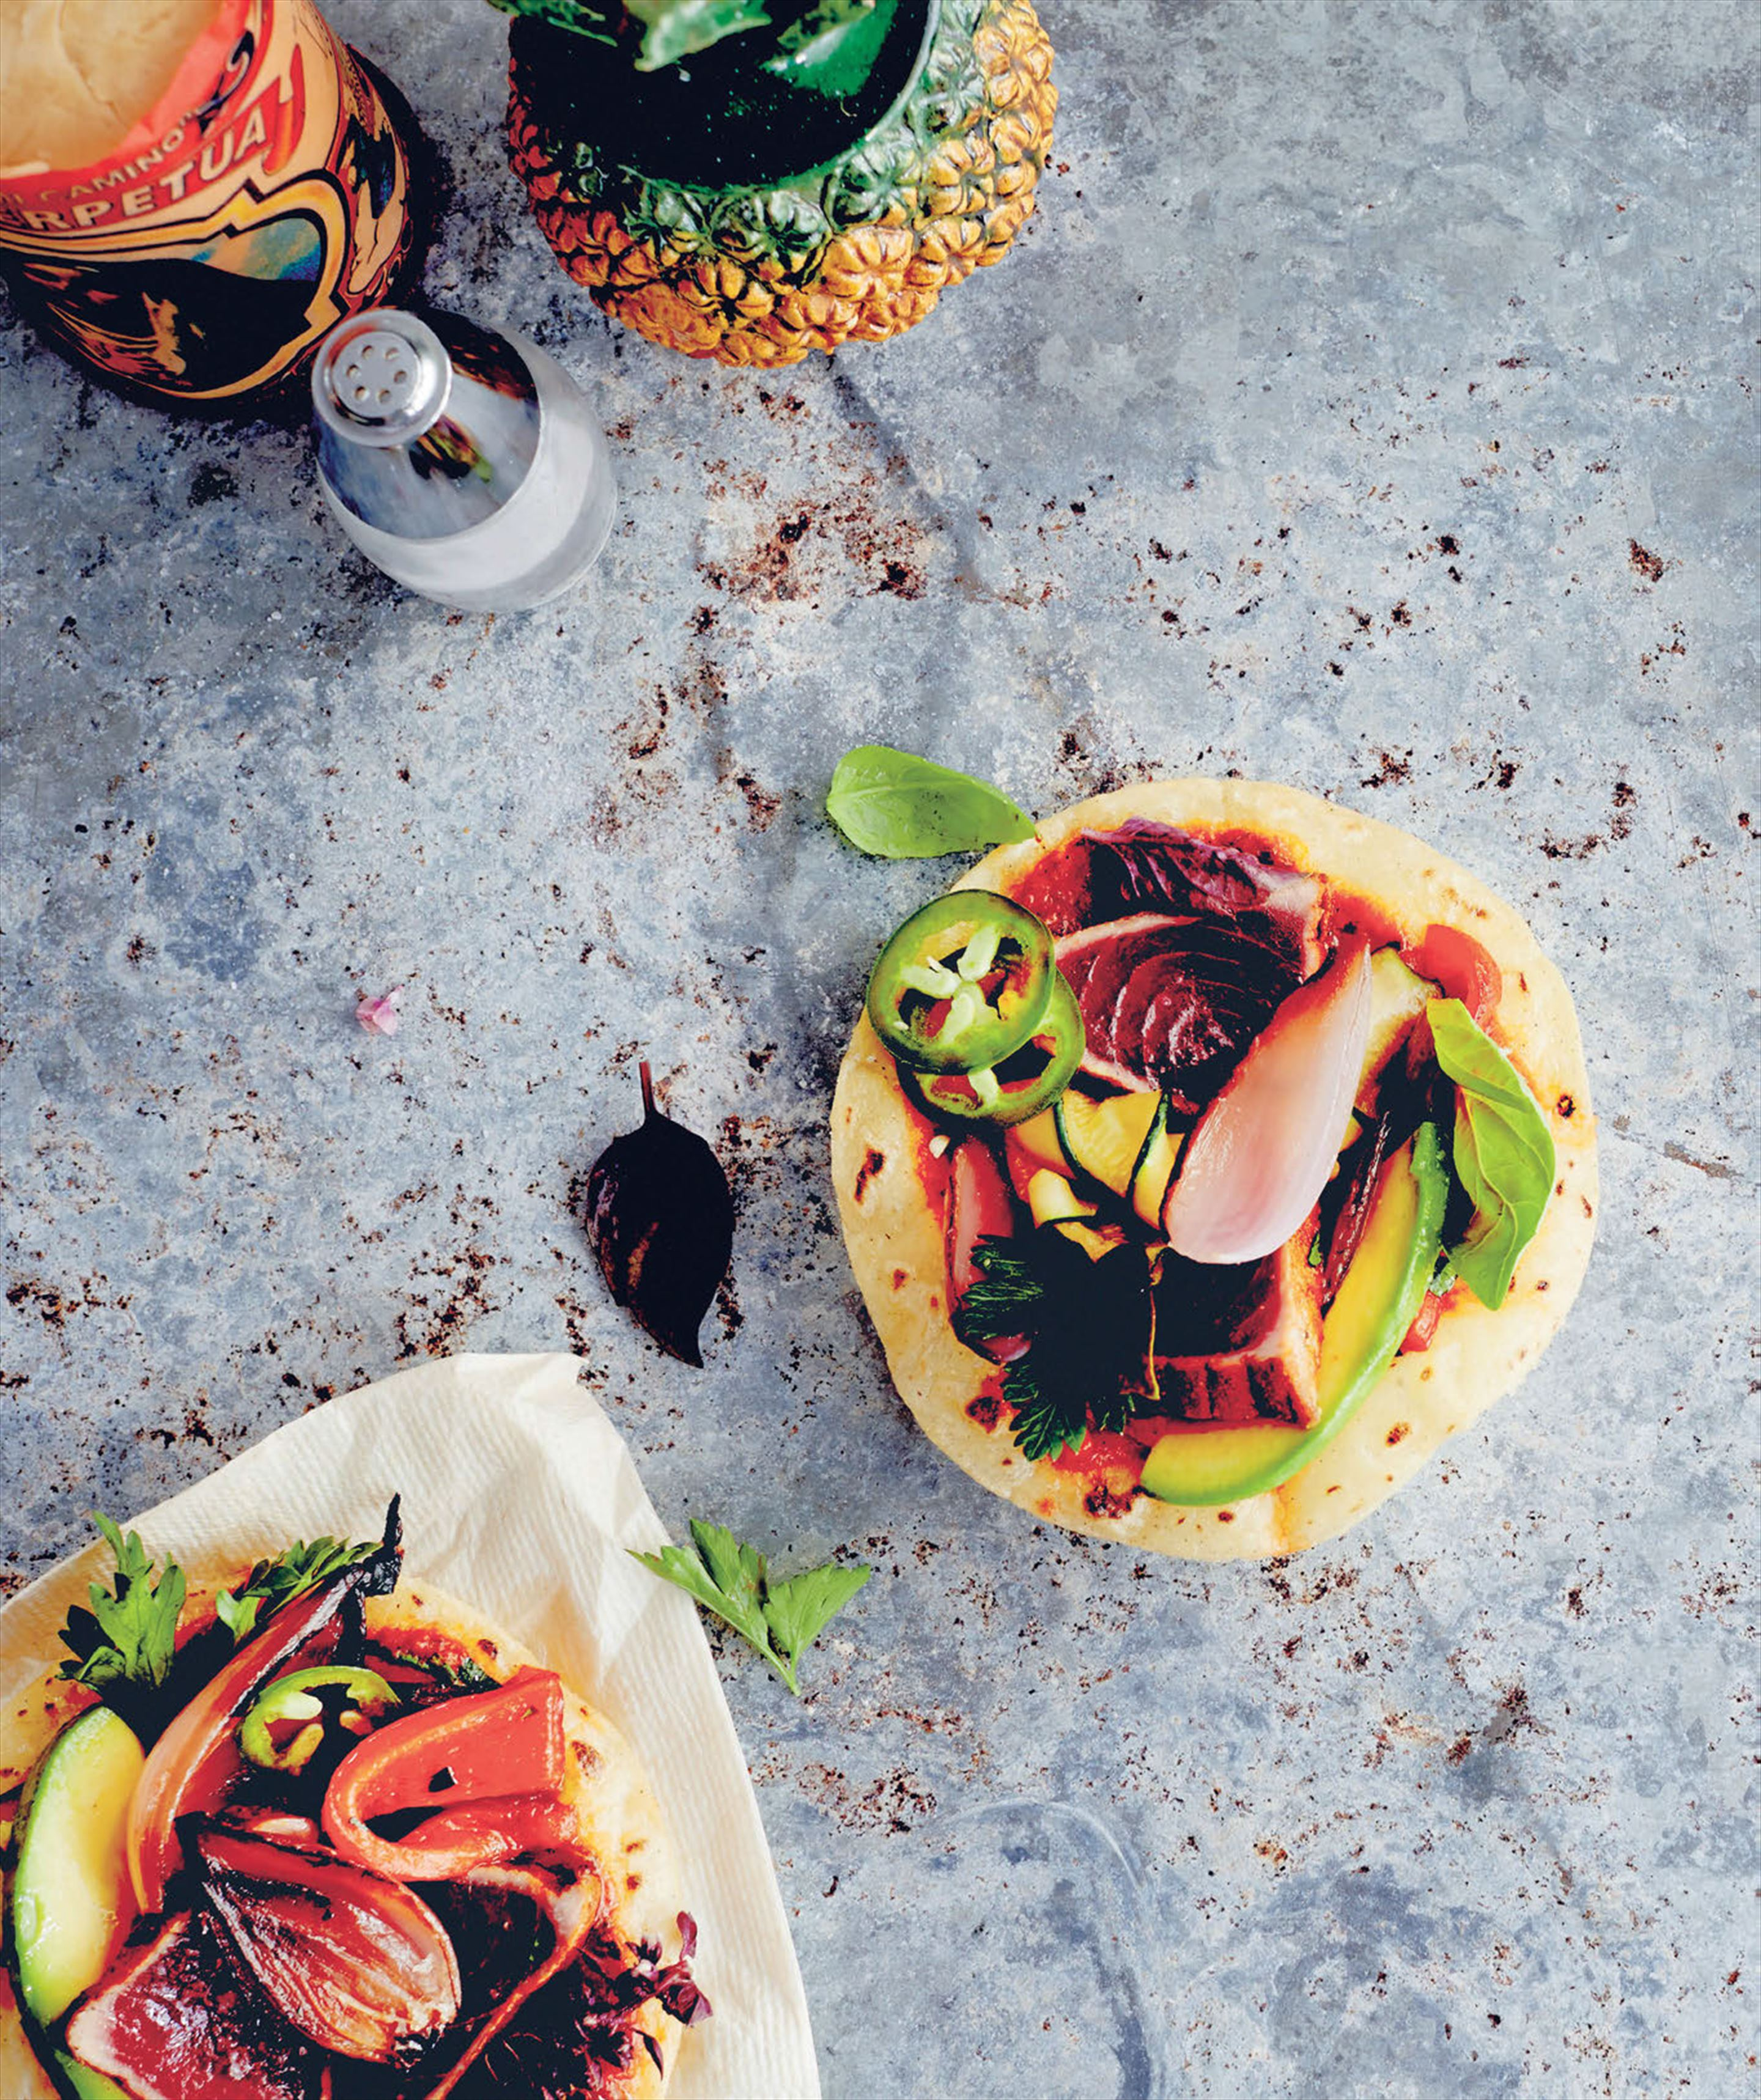 Street-style tostadas with seared tuna & wood-grilled vegetables